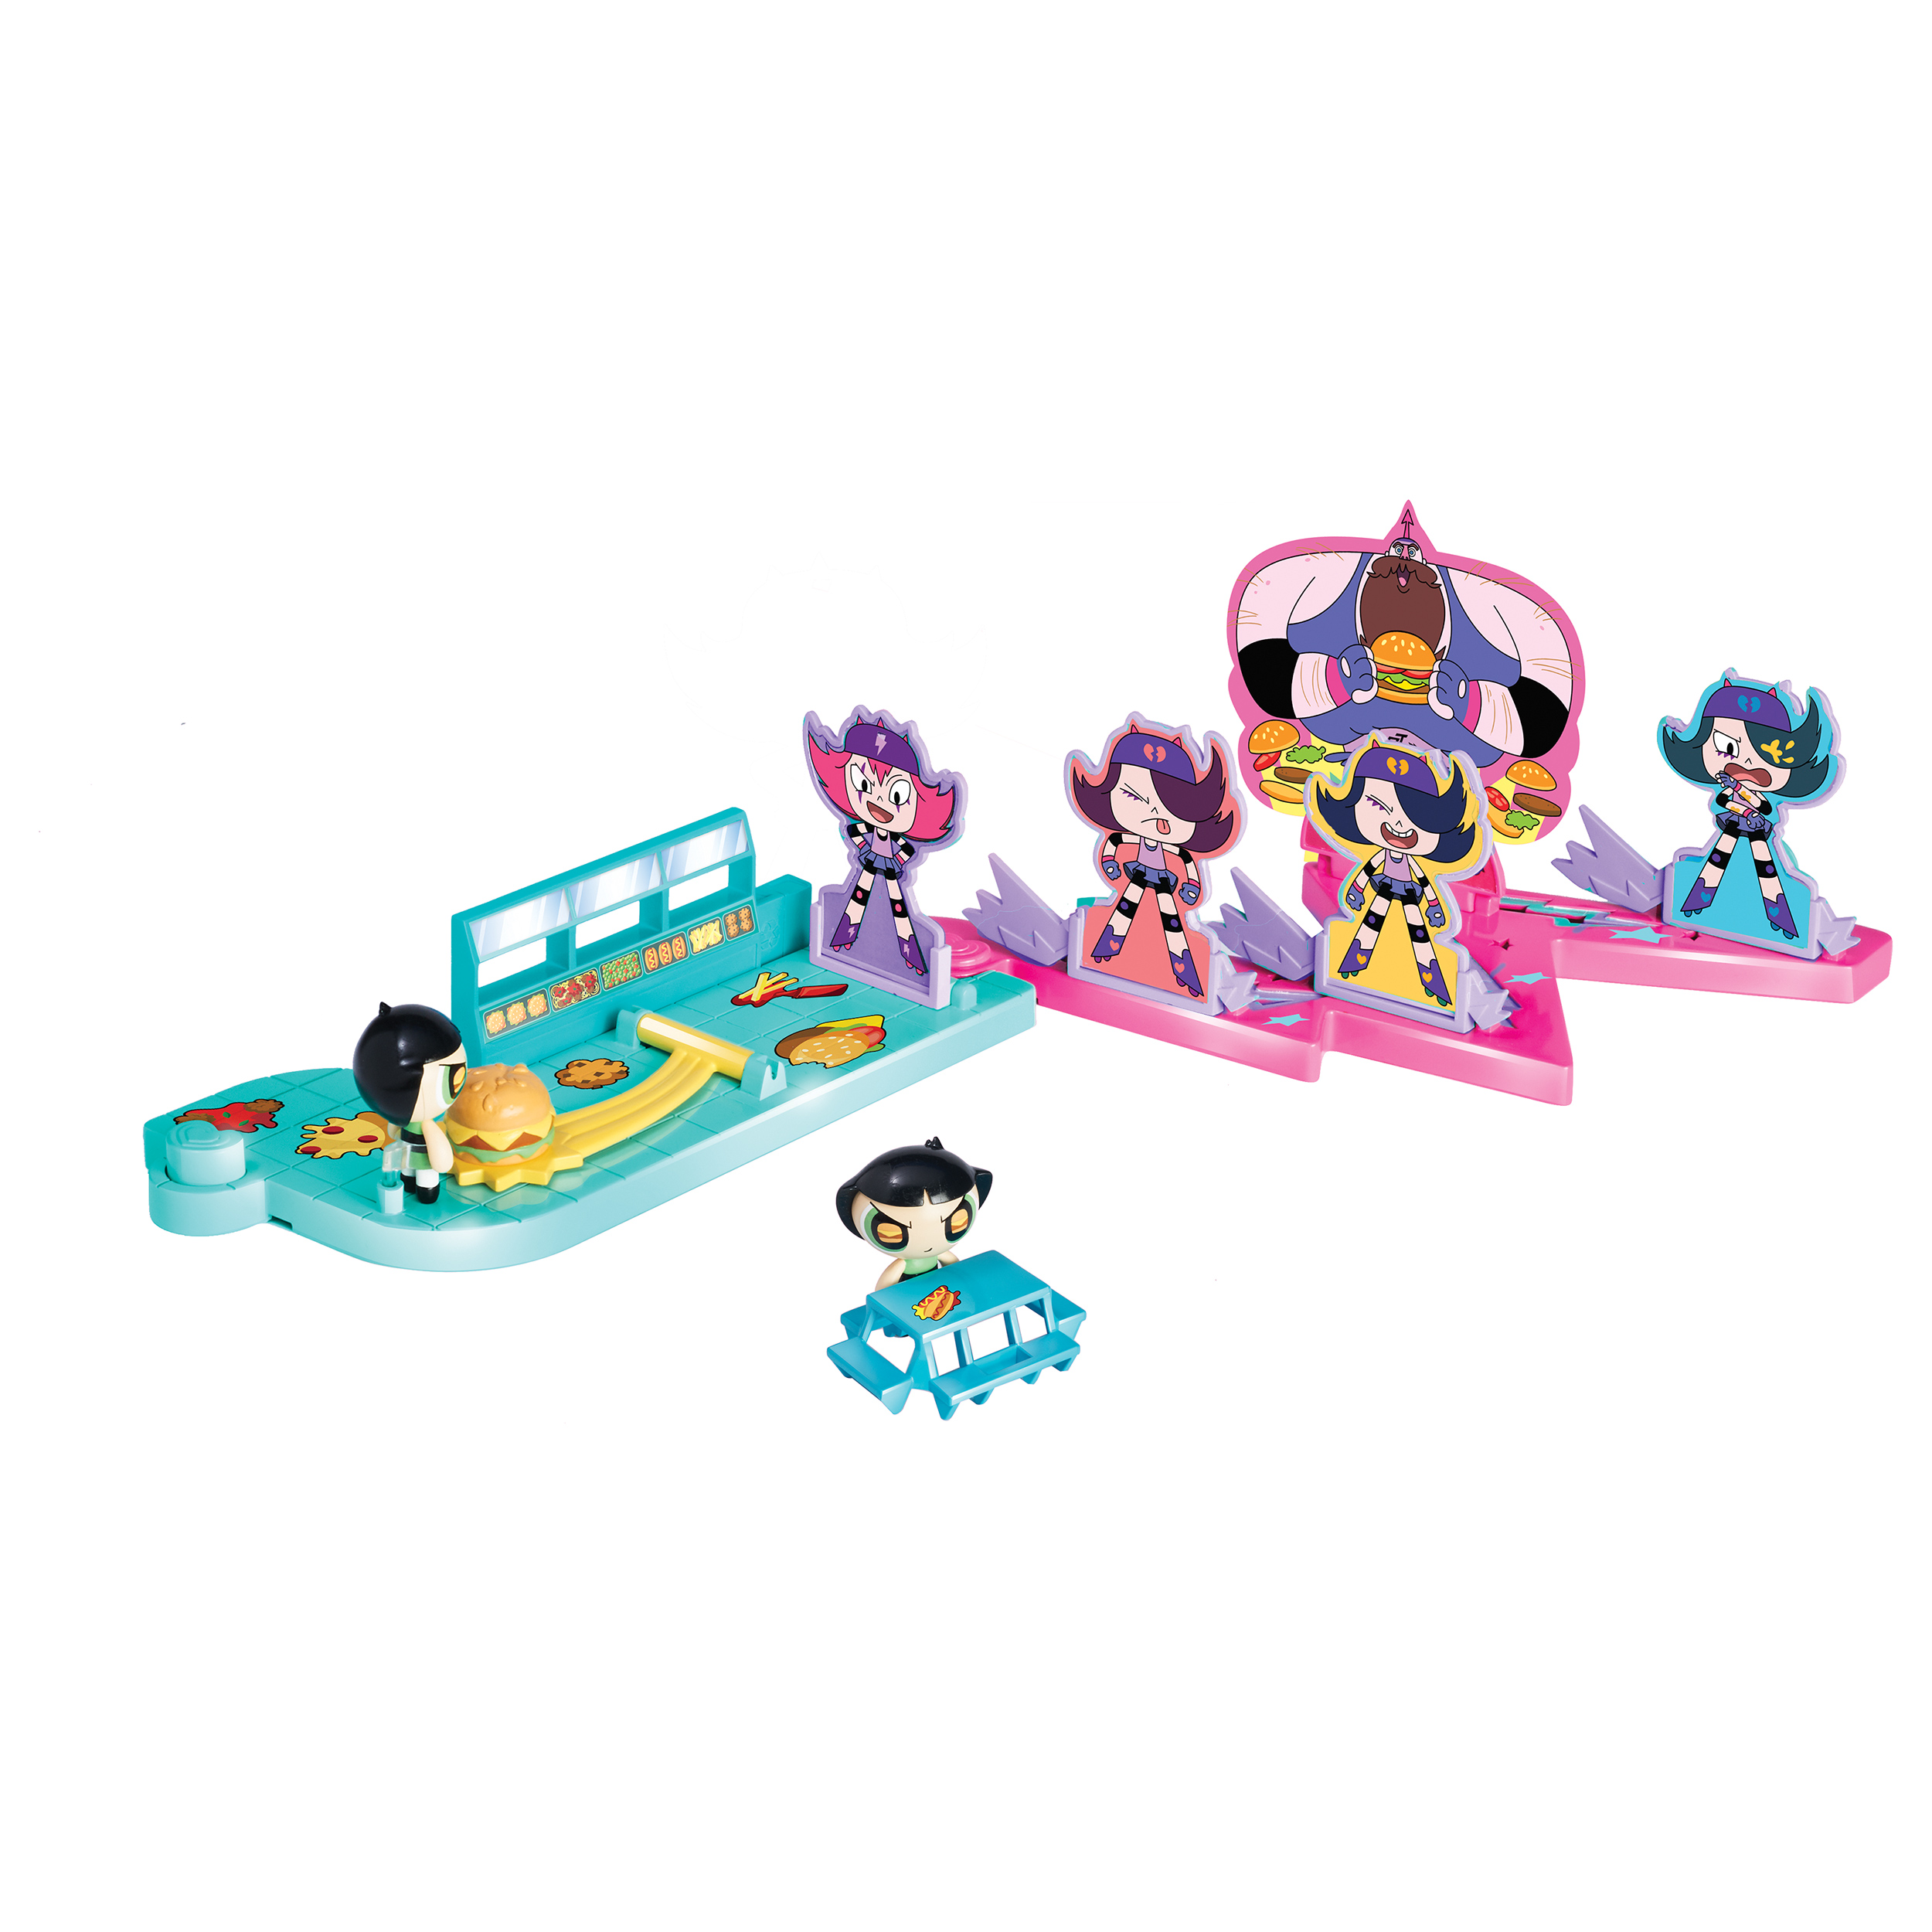 set tematic cu figurina powerpuff girls scenariu de poveste - derby dash